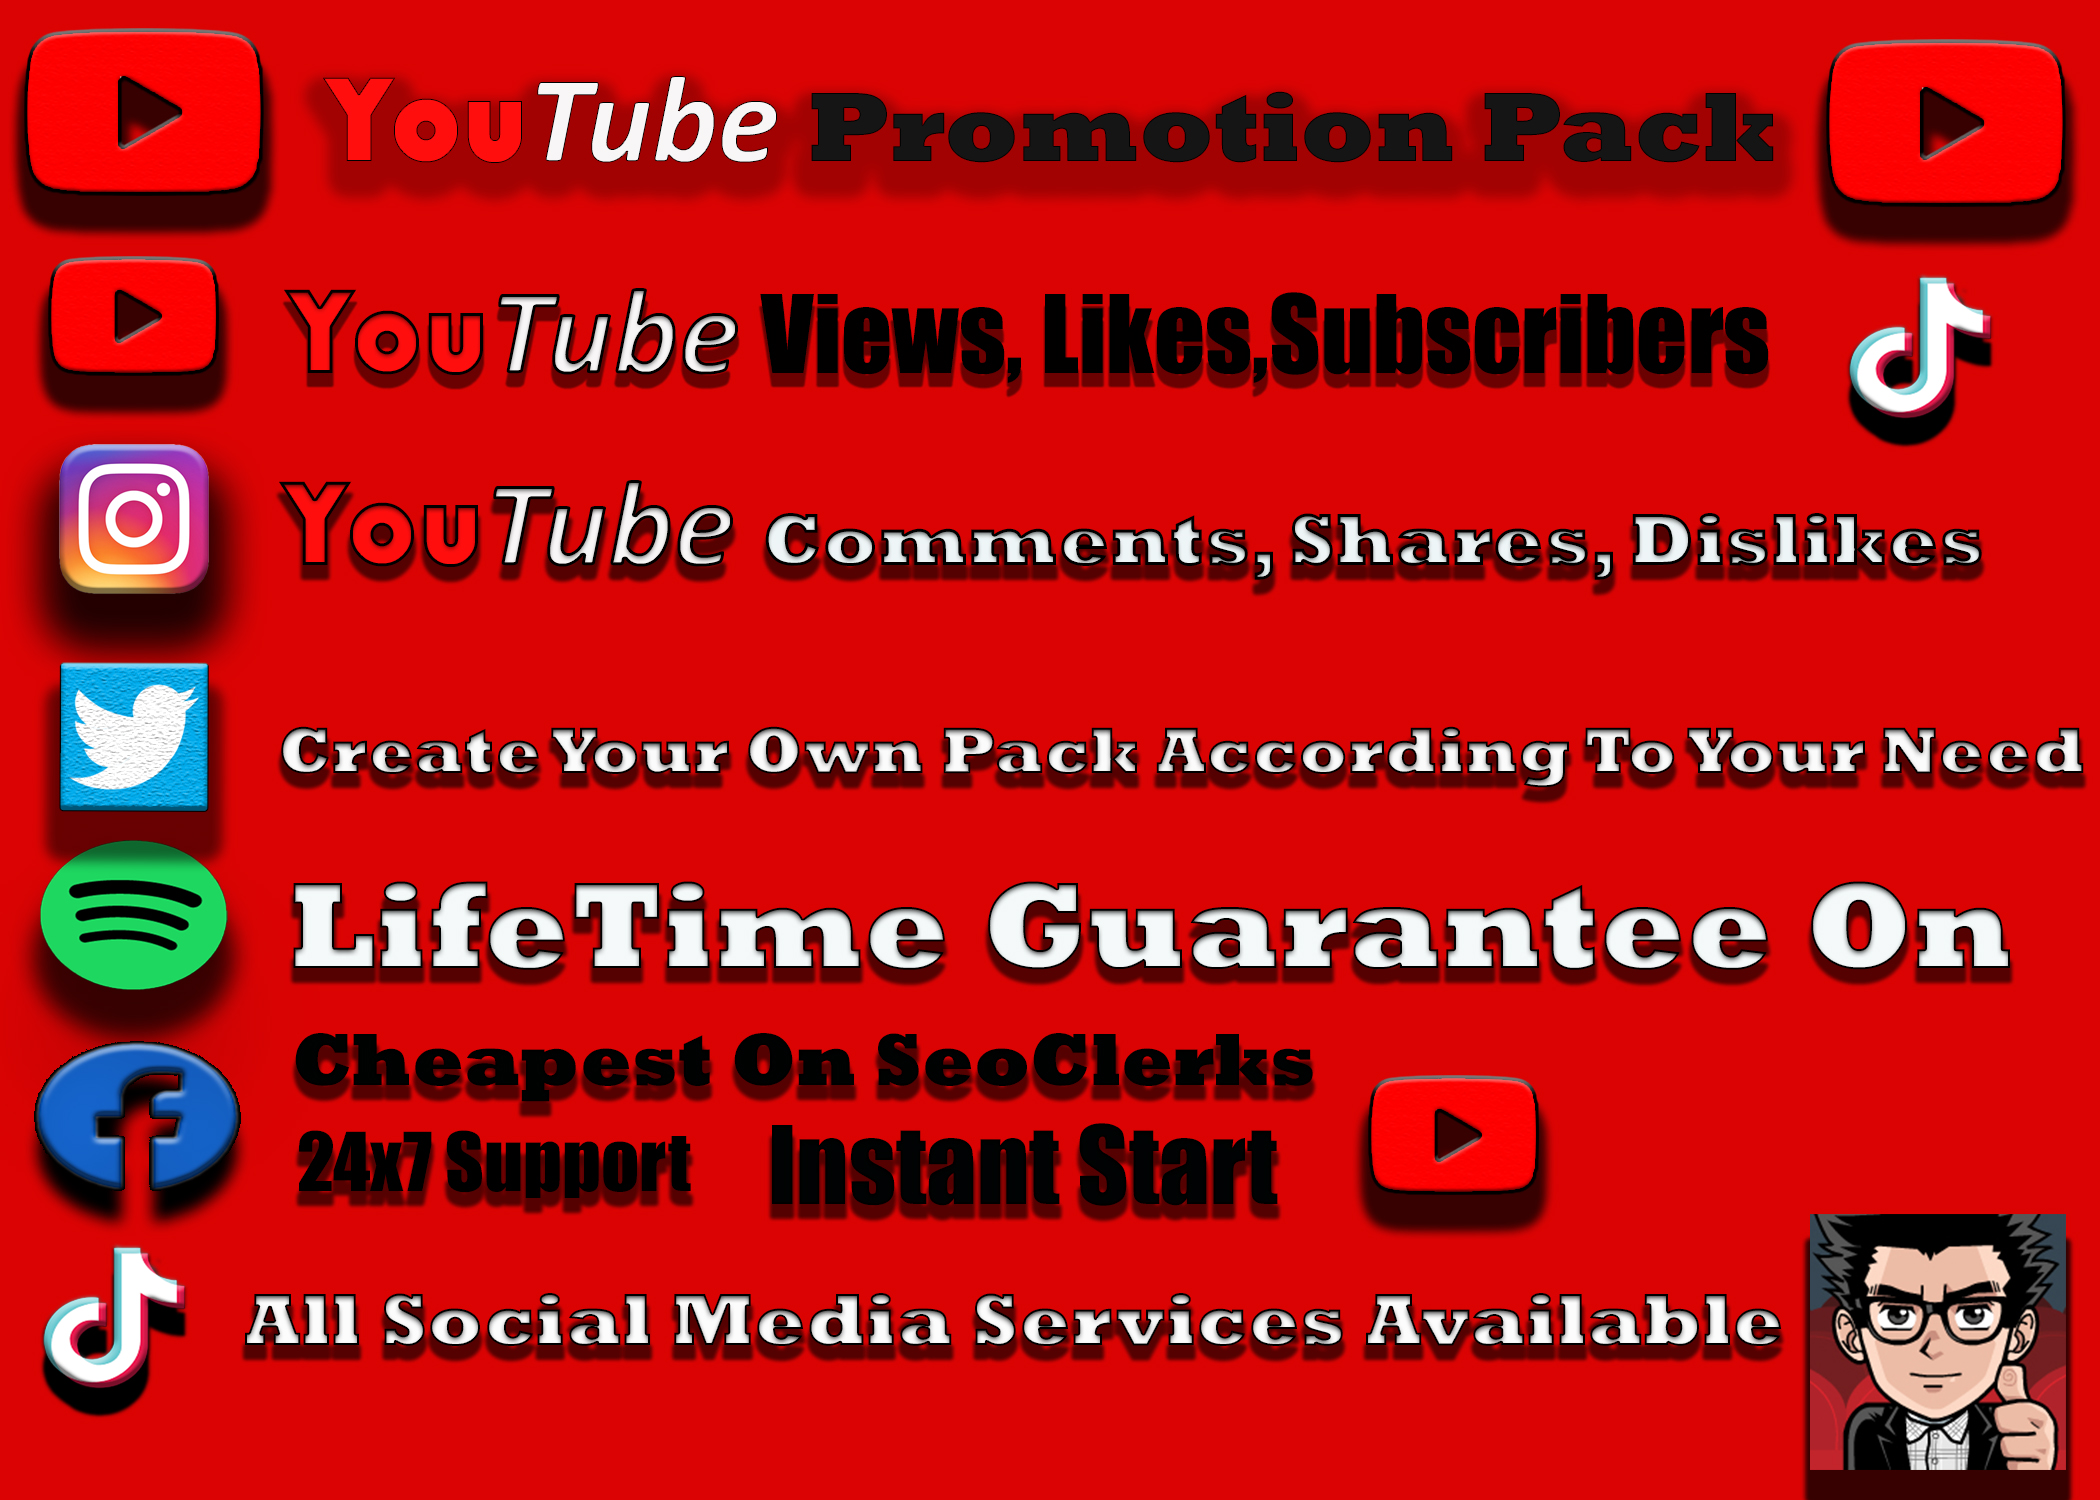 High Retention Organic YouTube 500 Video Promotions, 50 thumbs Up 6-24 hr Delivery Non drop Instant